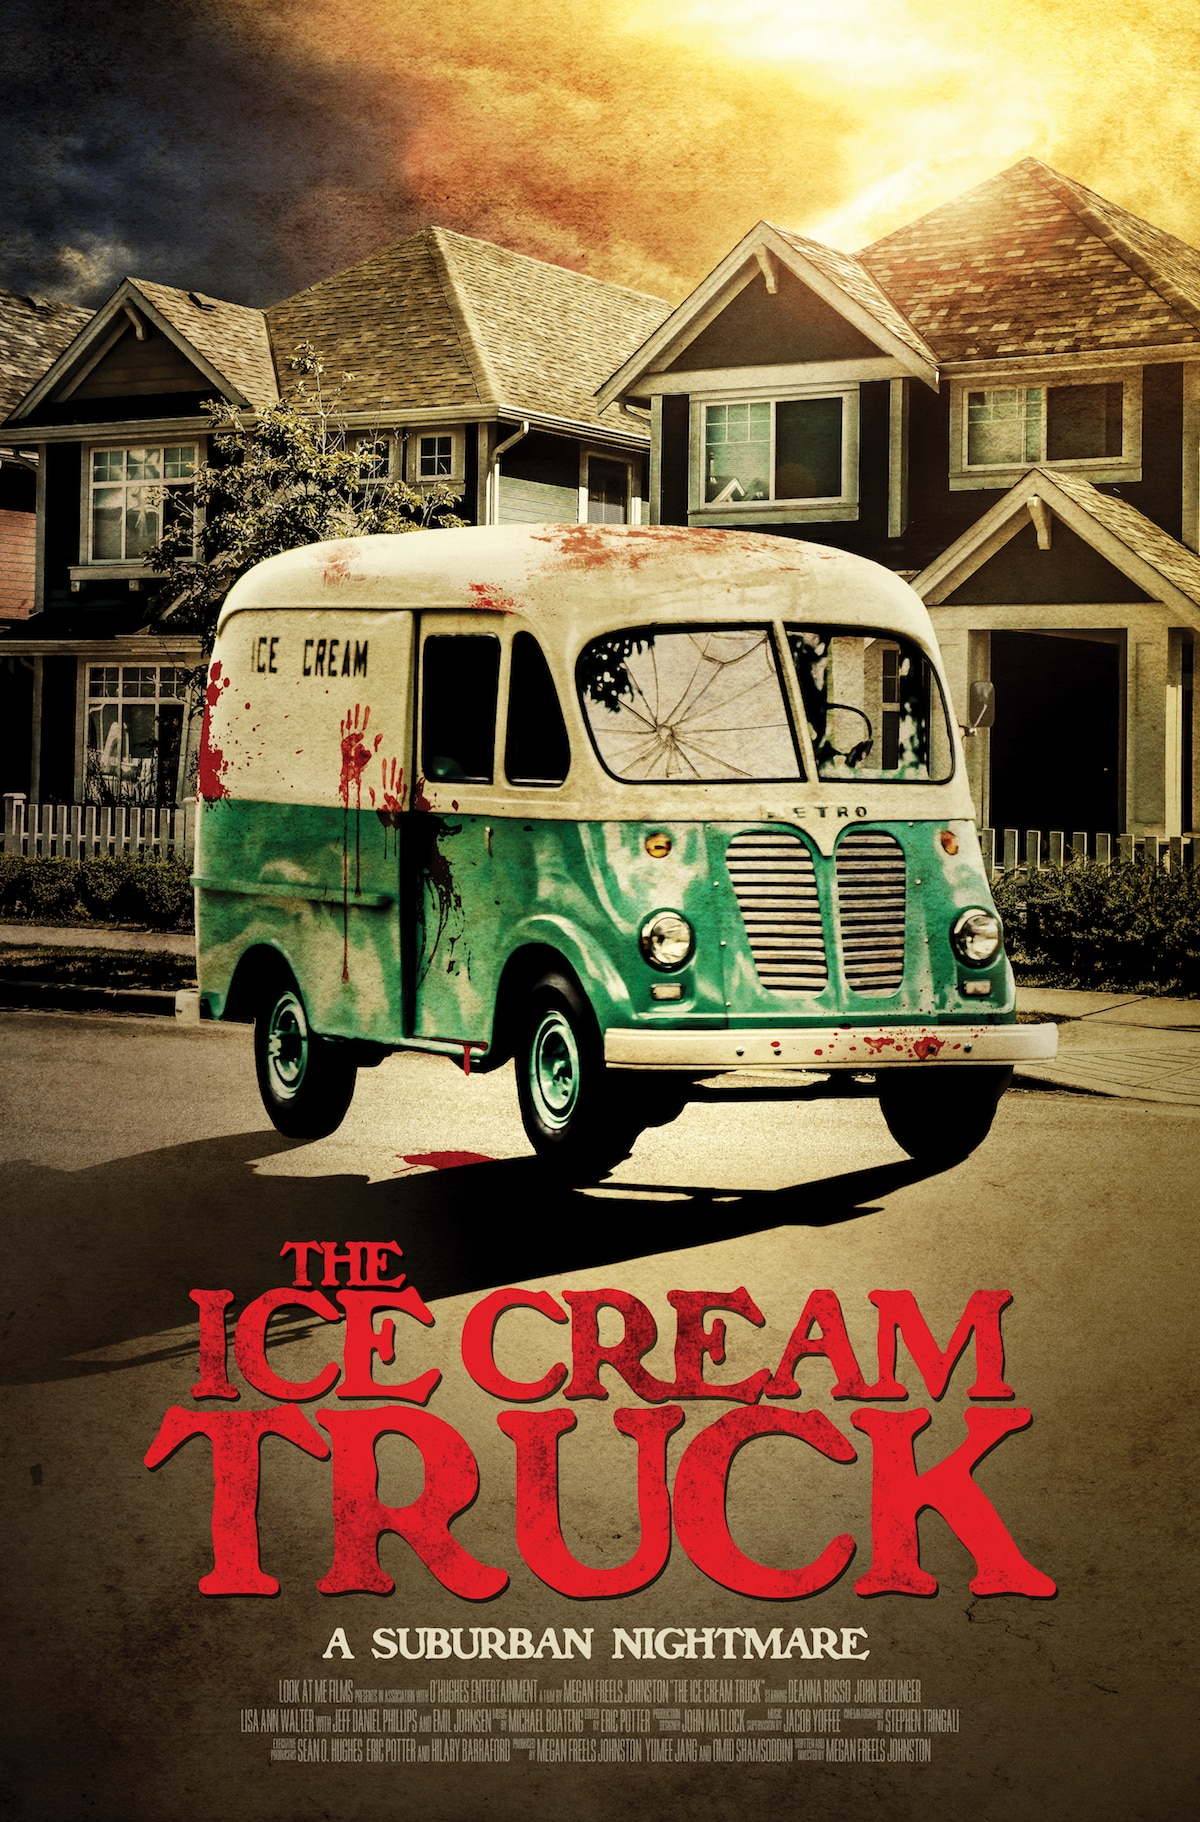 icecreamtruckposter 1 - The Ice Cream Truck Pulls Up and Hands Out Images